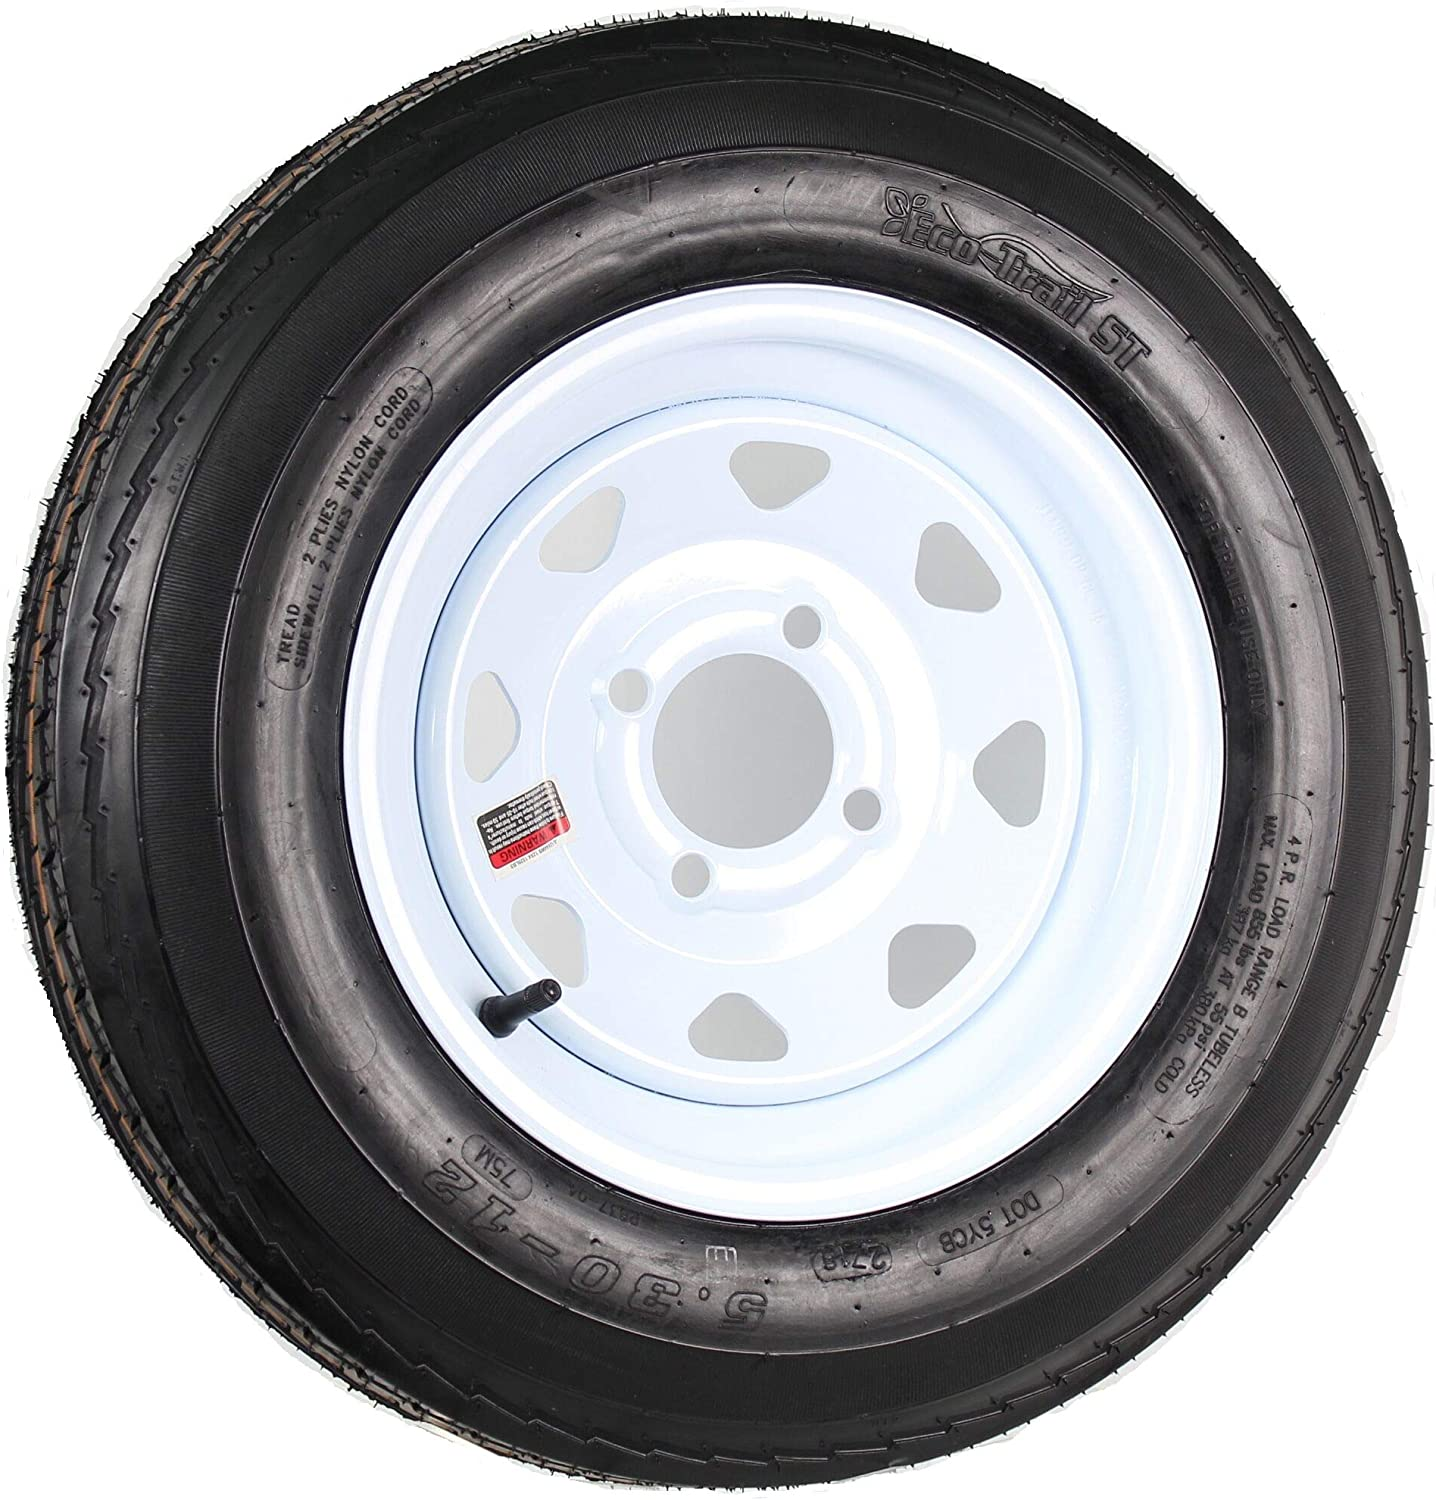 New 12 Inch 4 on 100 White Spoke Easy-to-use 100% quality warranty! Wheel Mounted With Trailer 5.30